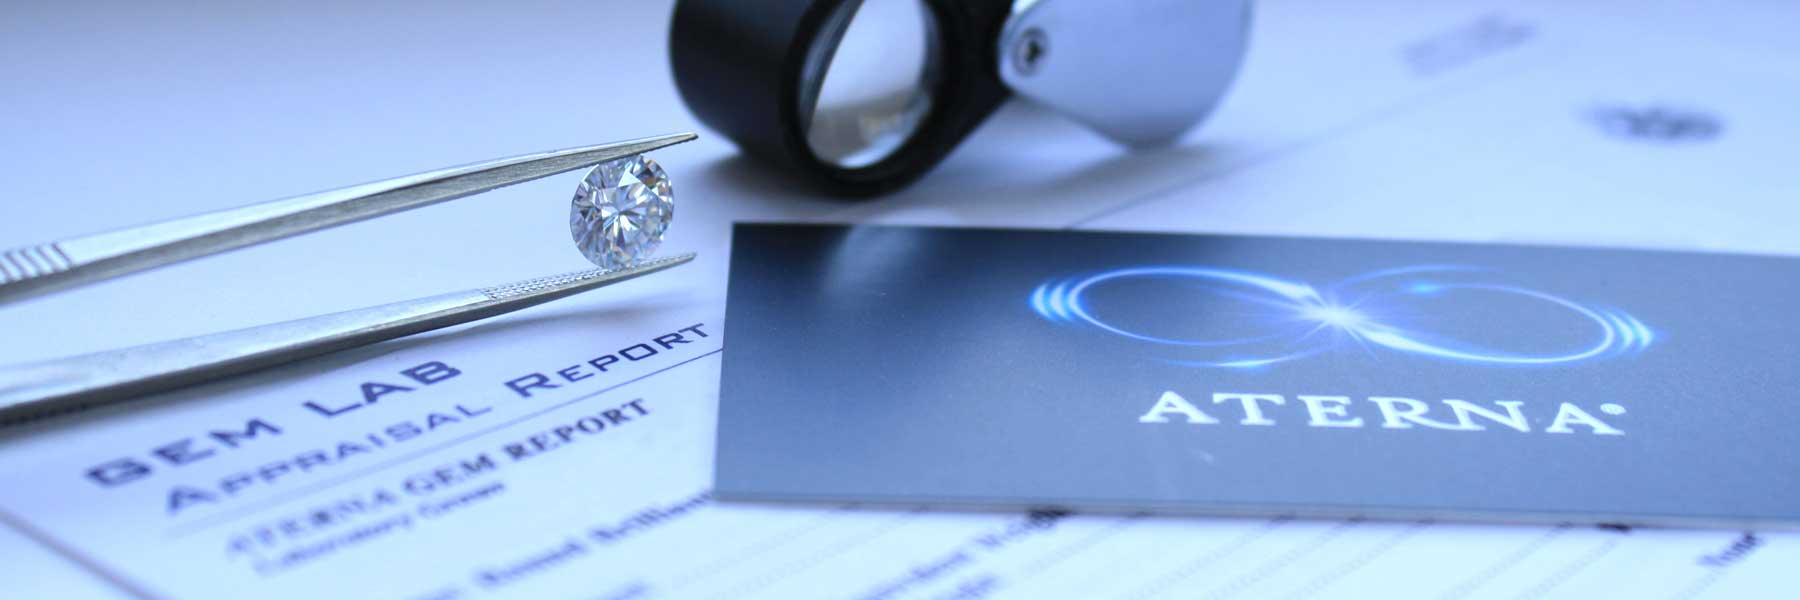 Aterna moissanite engagement rings from quorri canada